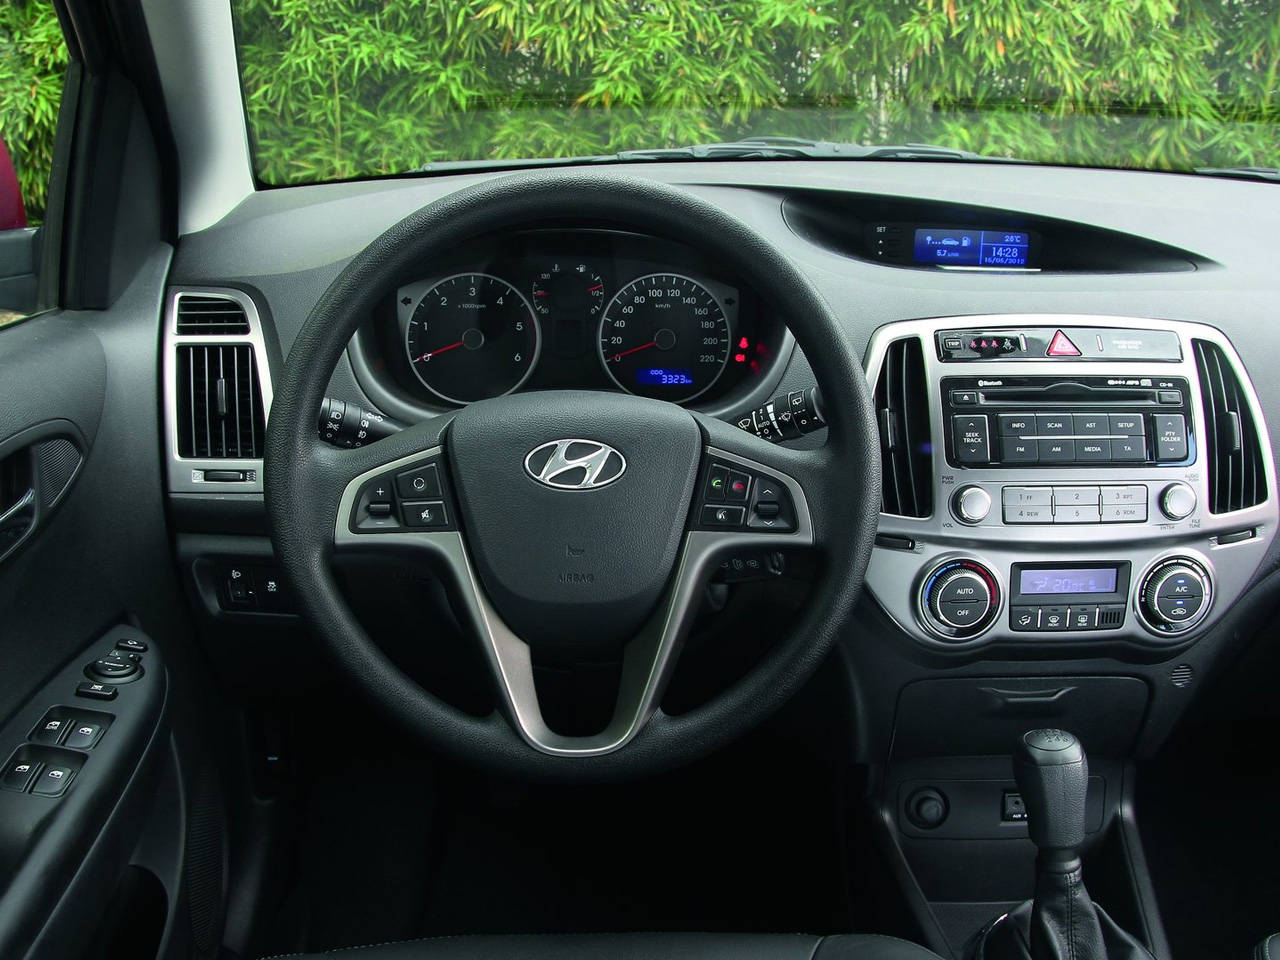 Hyundai i20 2013 interior muscle cars zone - Hyundai i20 interior ...